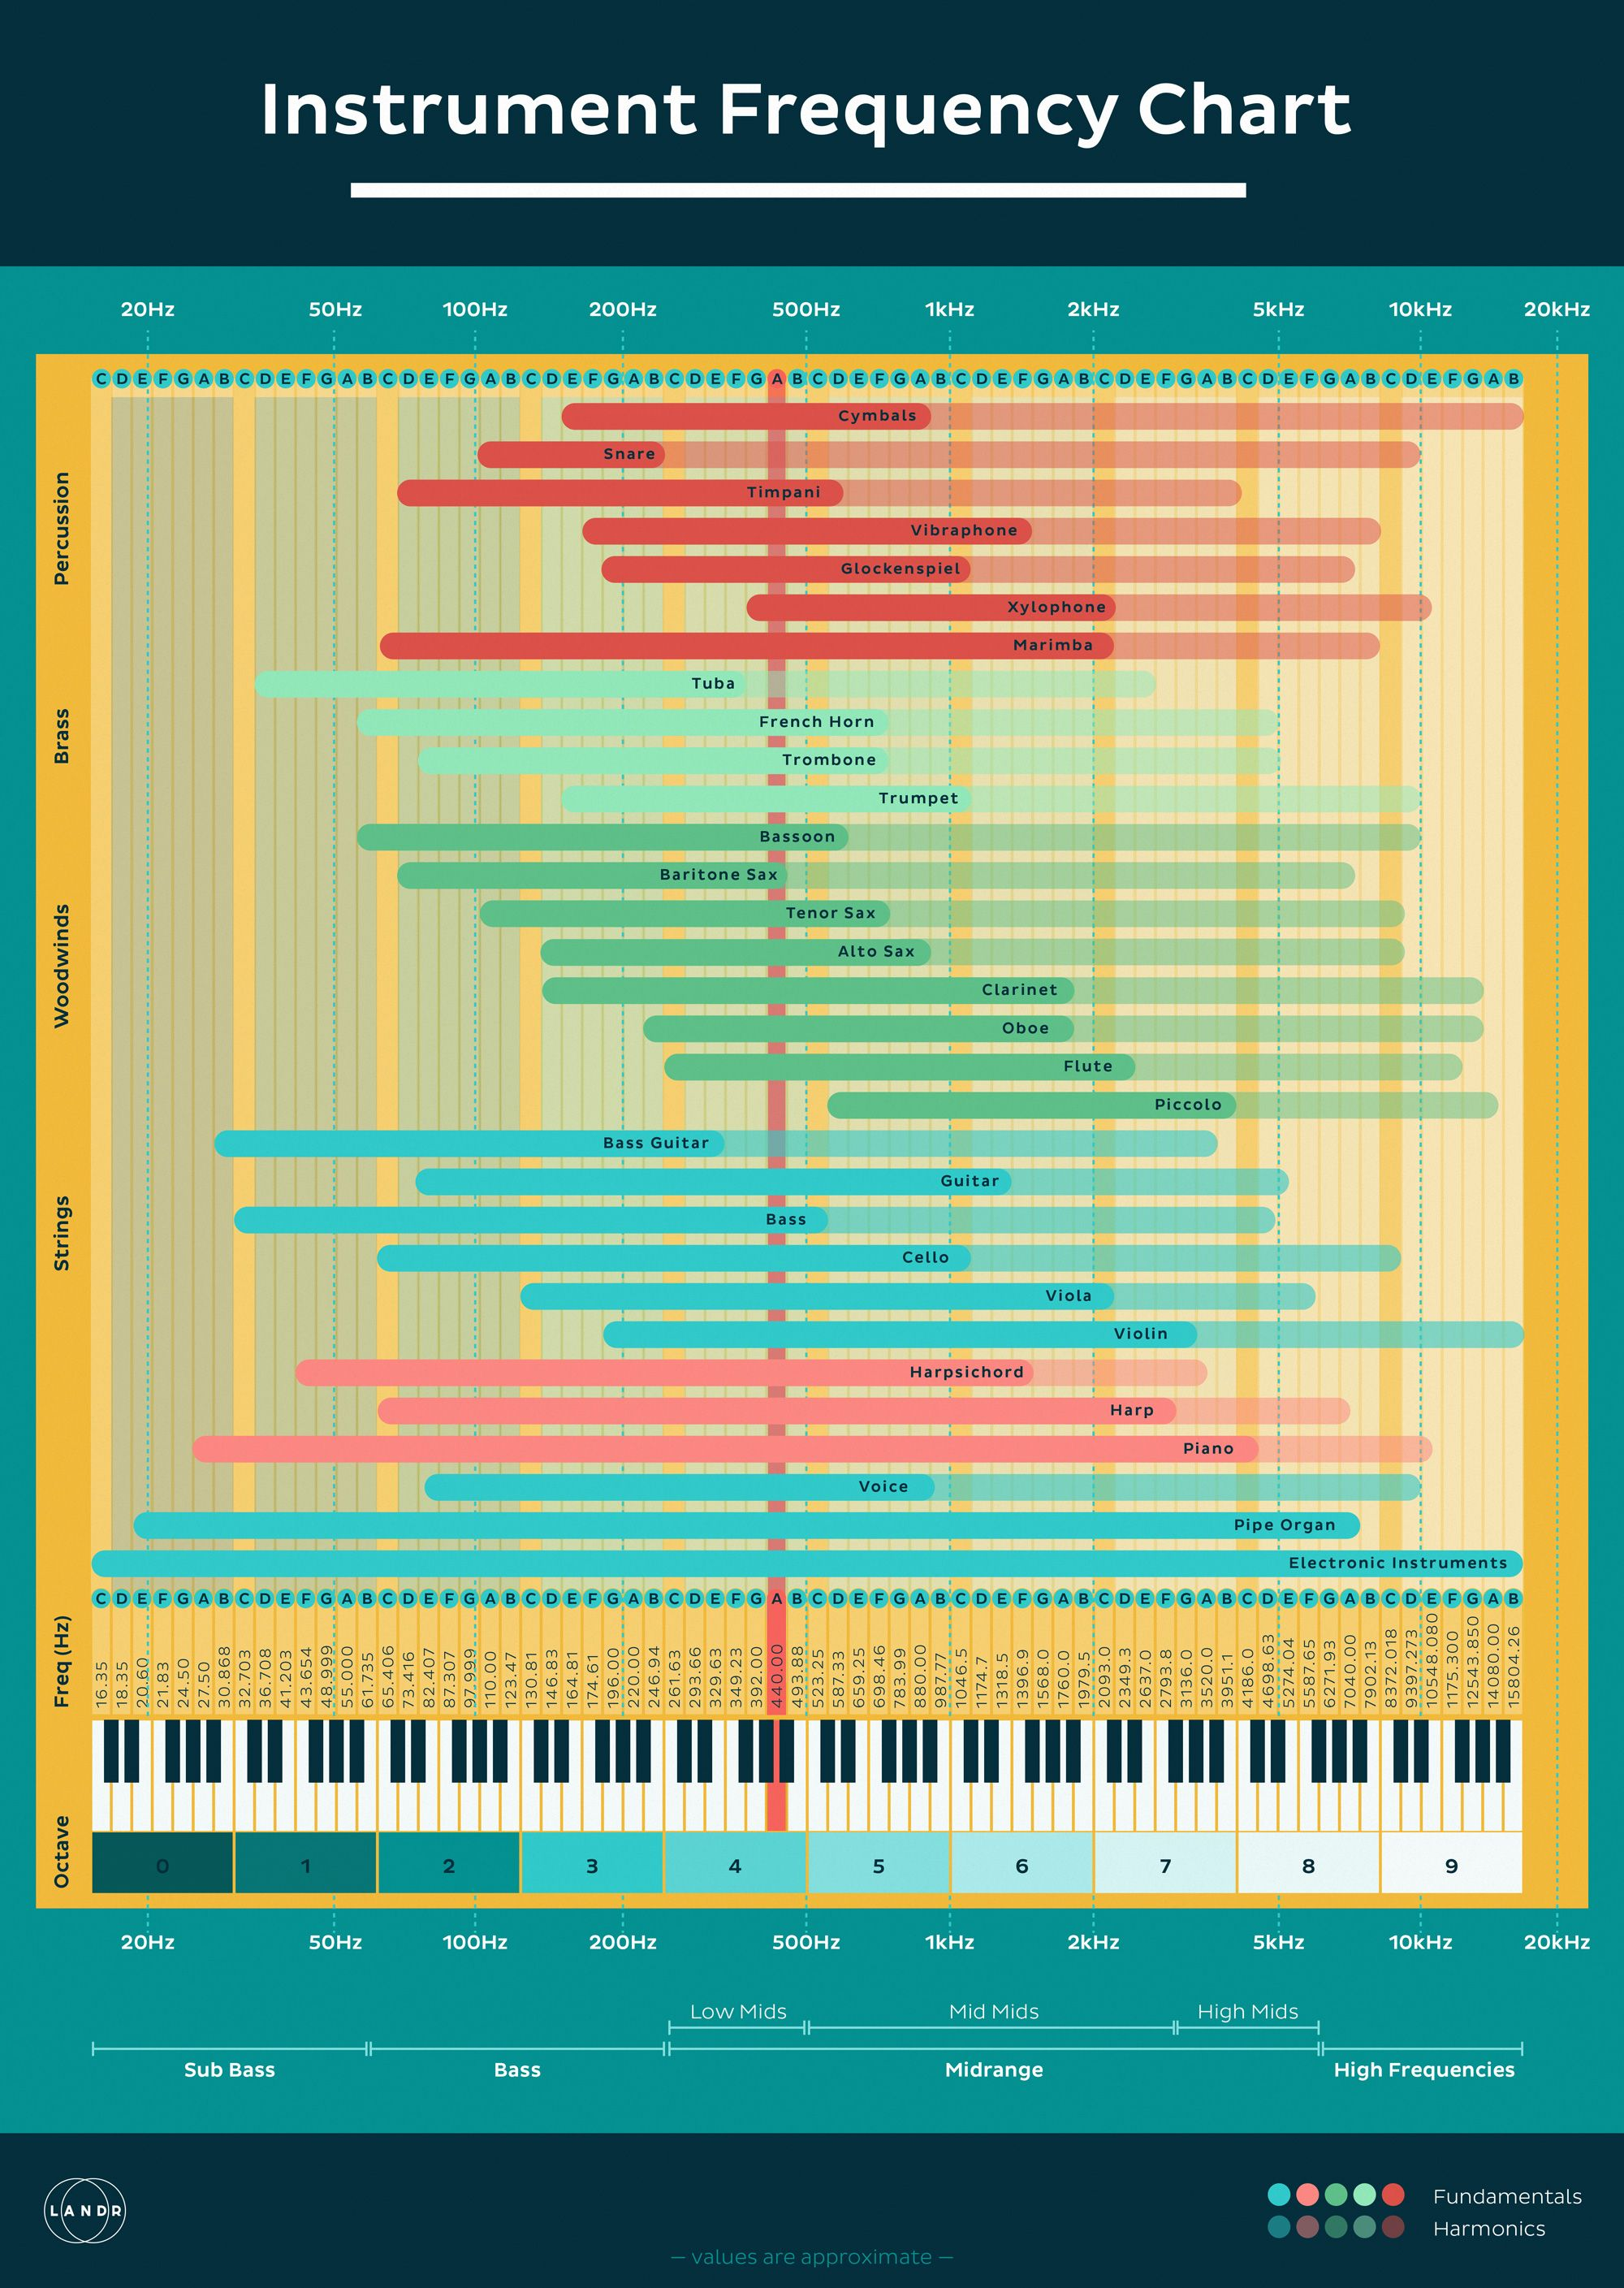 Eq Cheat Sheet How To Use An Instrument Frequency Chart Infographic Landr Blog Music Mixing Music Tutorials Music Engineers